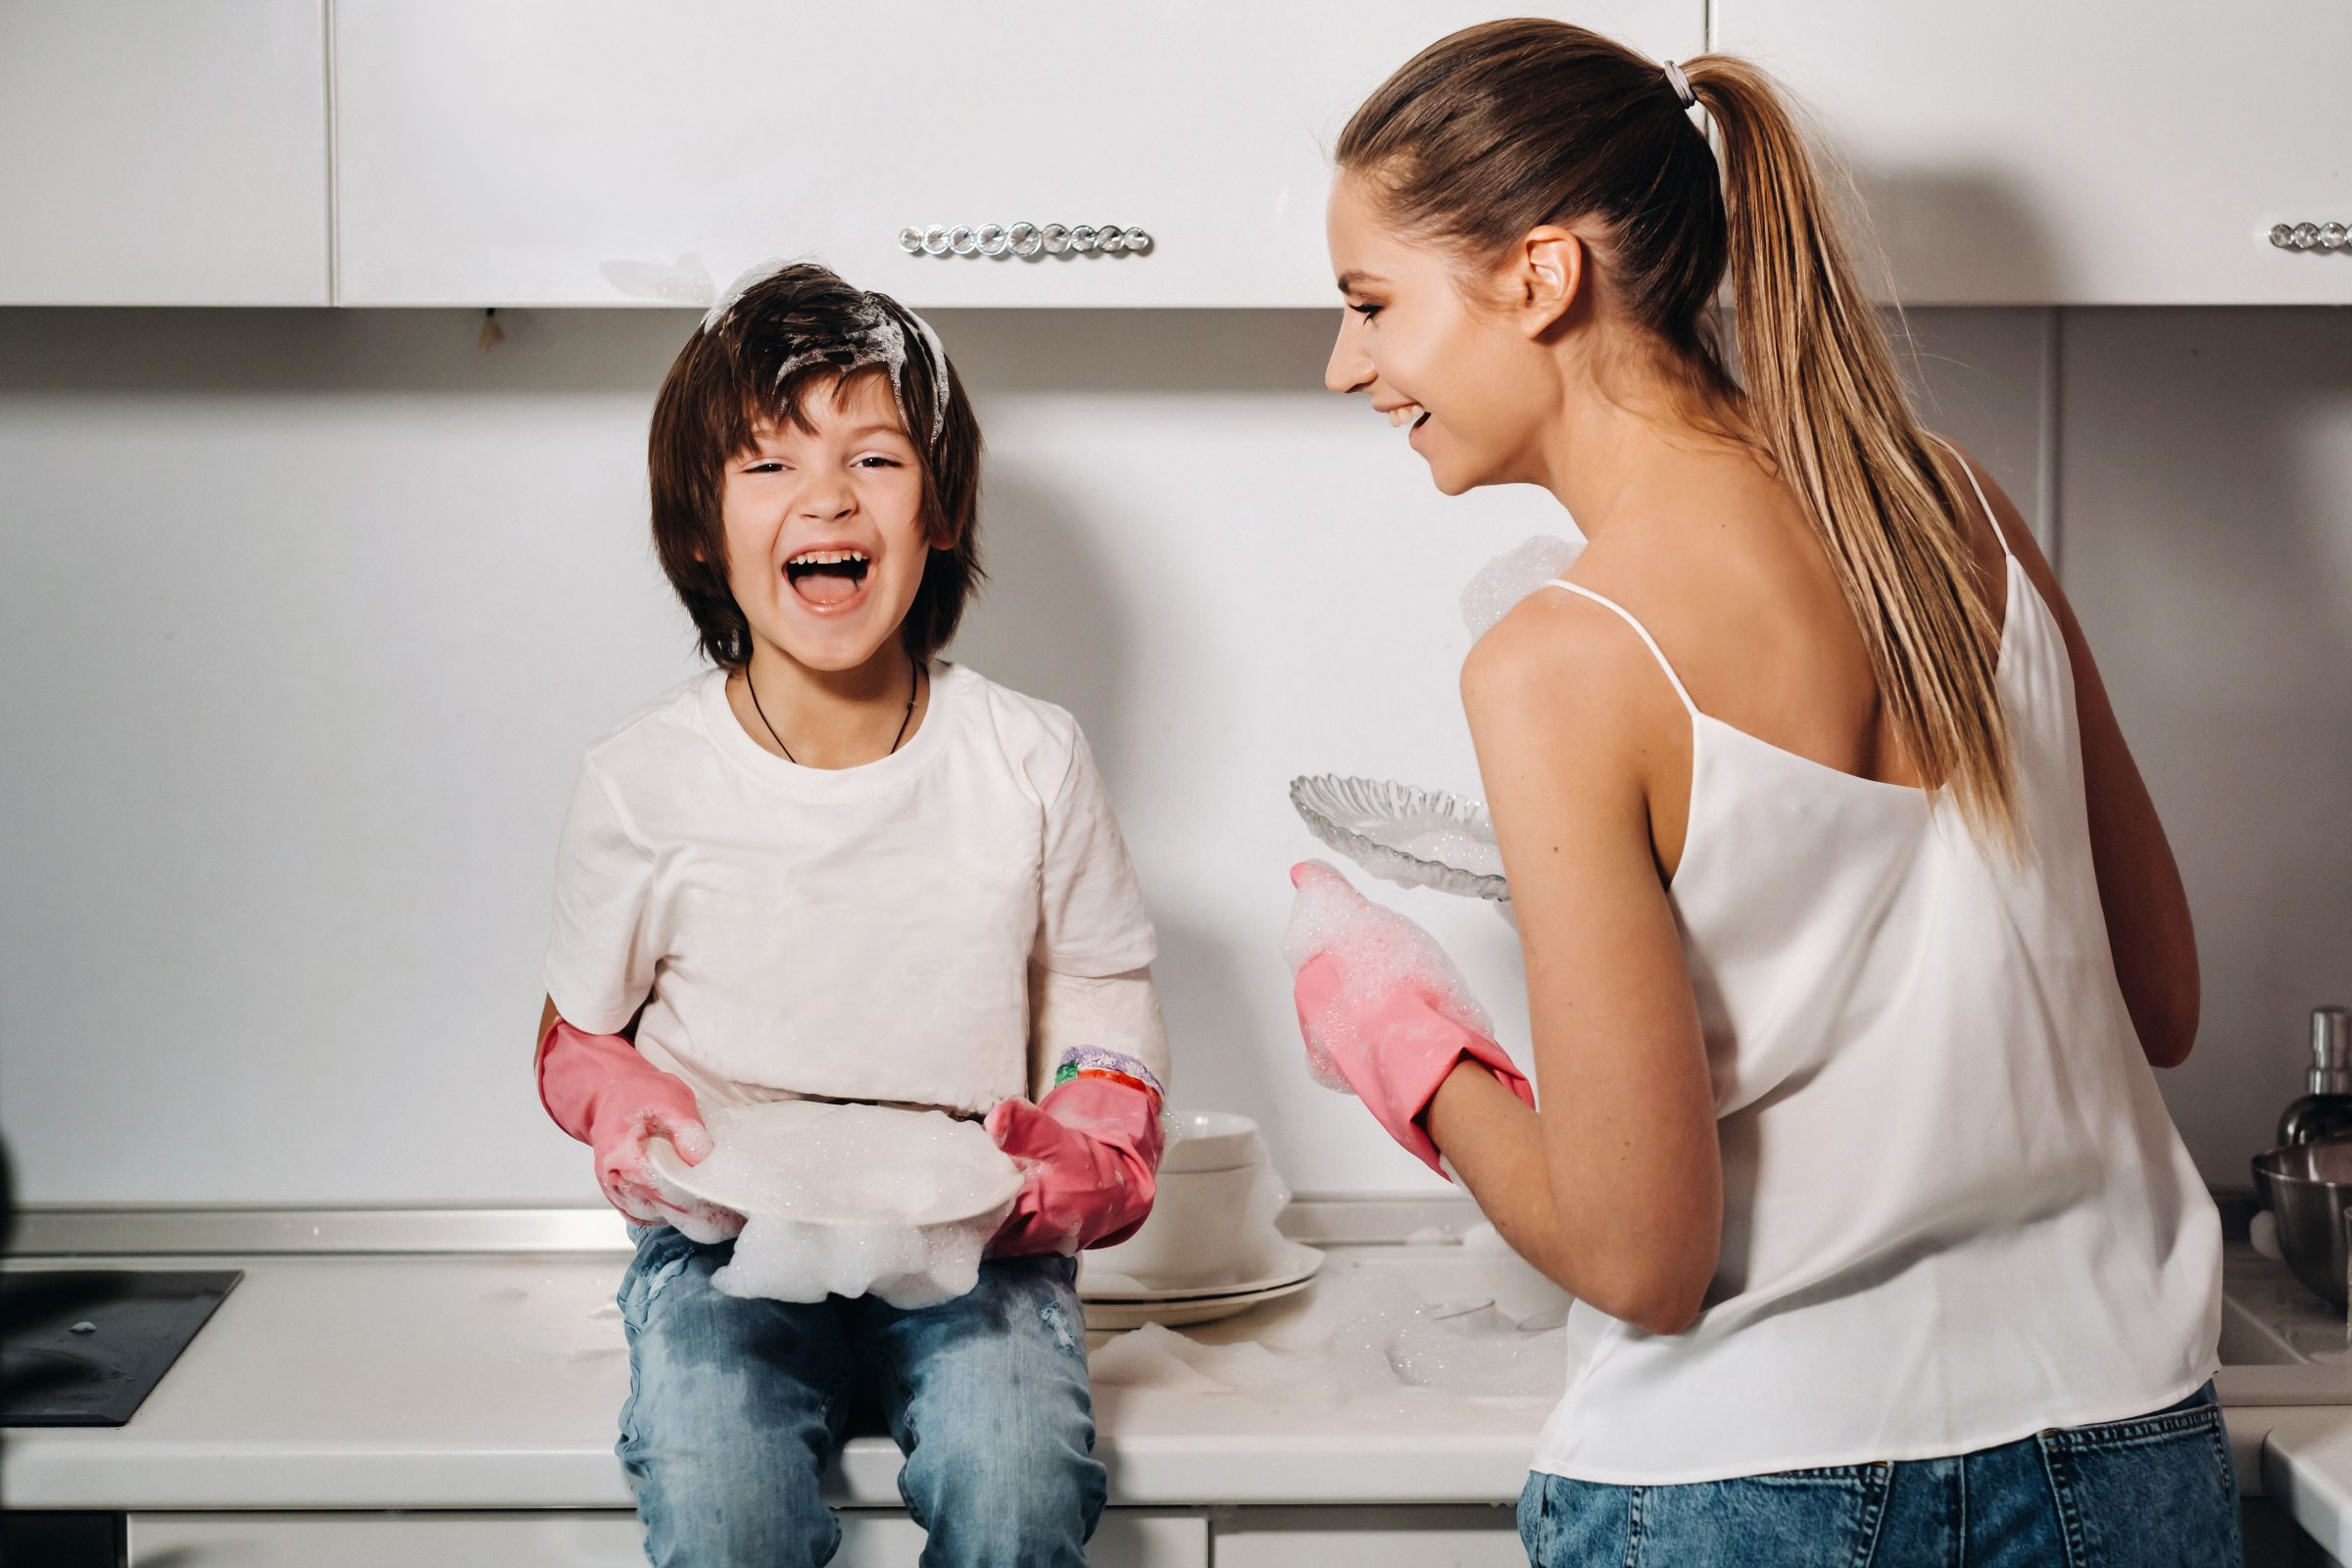 Housewife Mom Pink Gloves Washes Dishes With Her Son By Hand Sink With Detergent Girl White Child With Cast Cleans House Washes Dishes Homemade Pink Gloves (1)